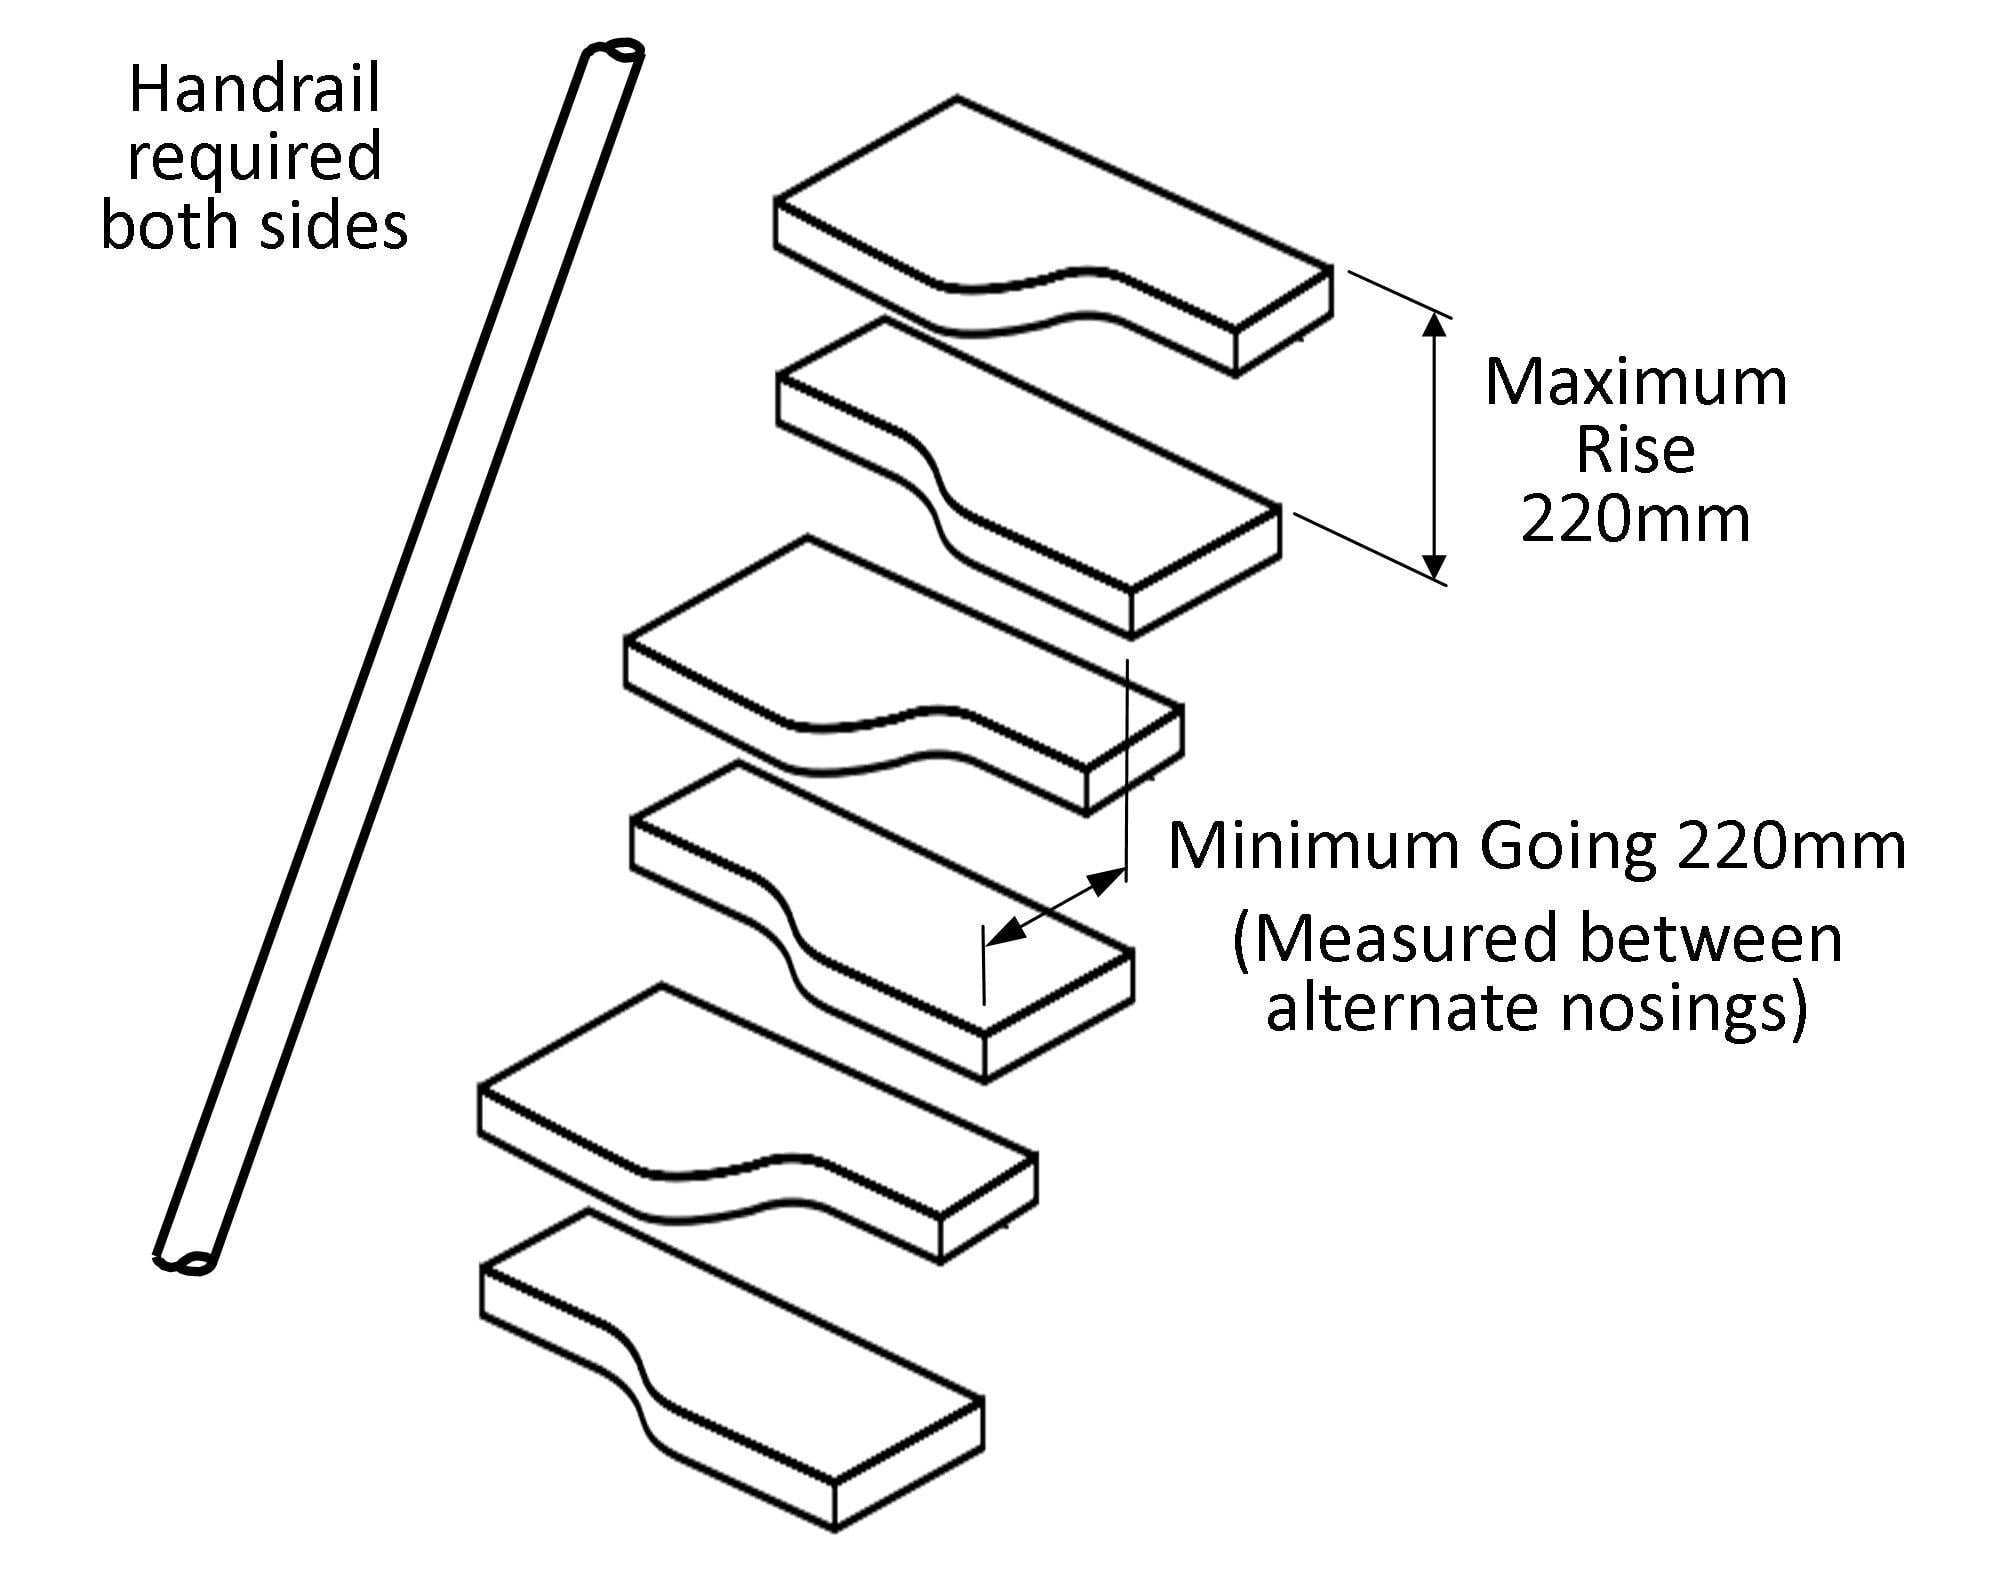 The Maximum Rise For Space Saving Stairs Is 220mm And The Minimum Going Is  220mm.